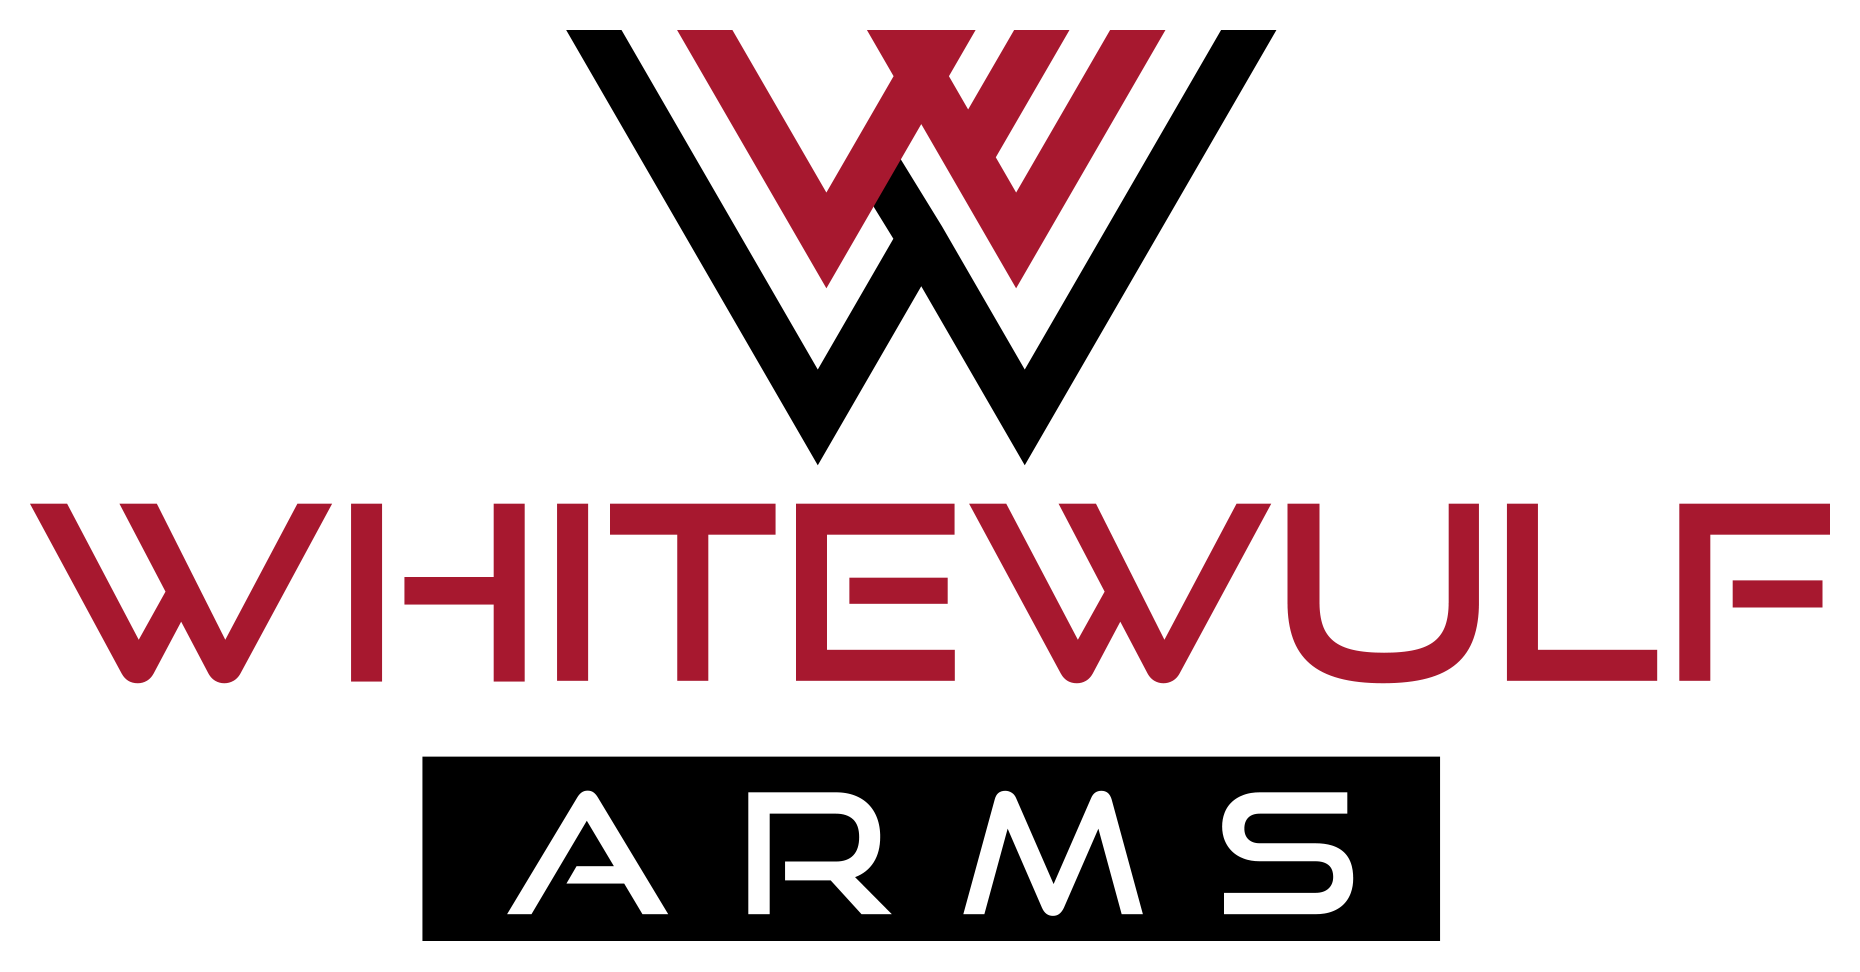 WhiteWulf Arms